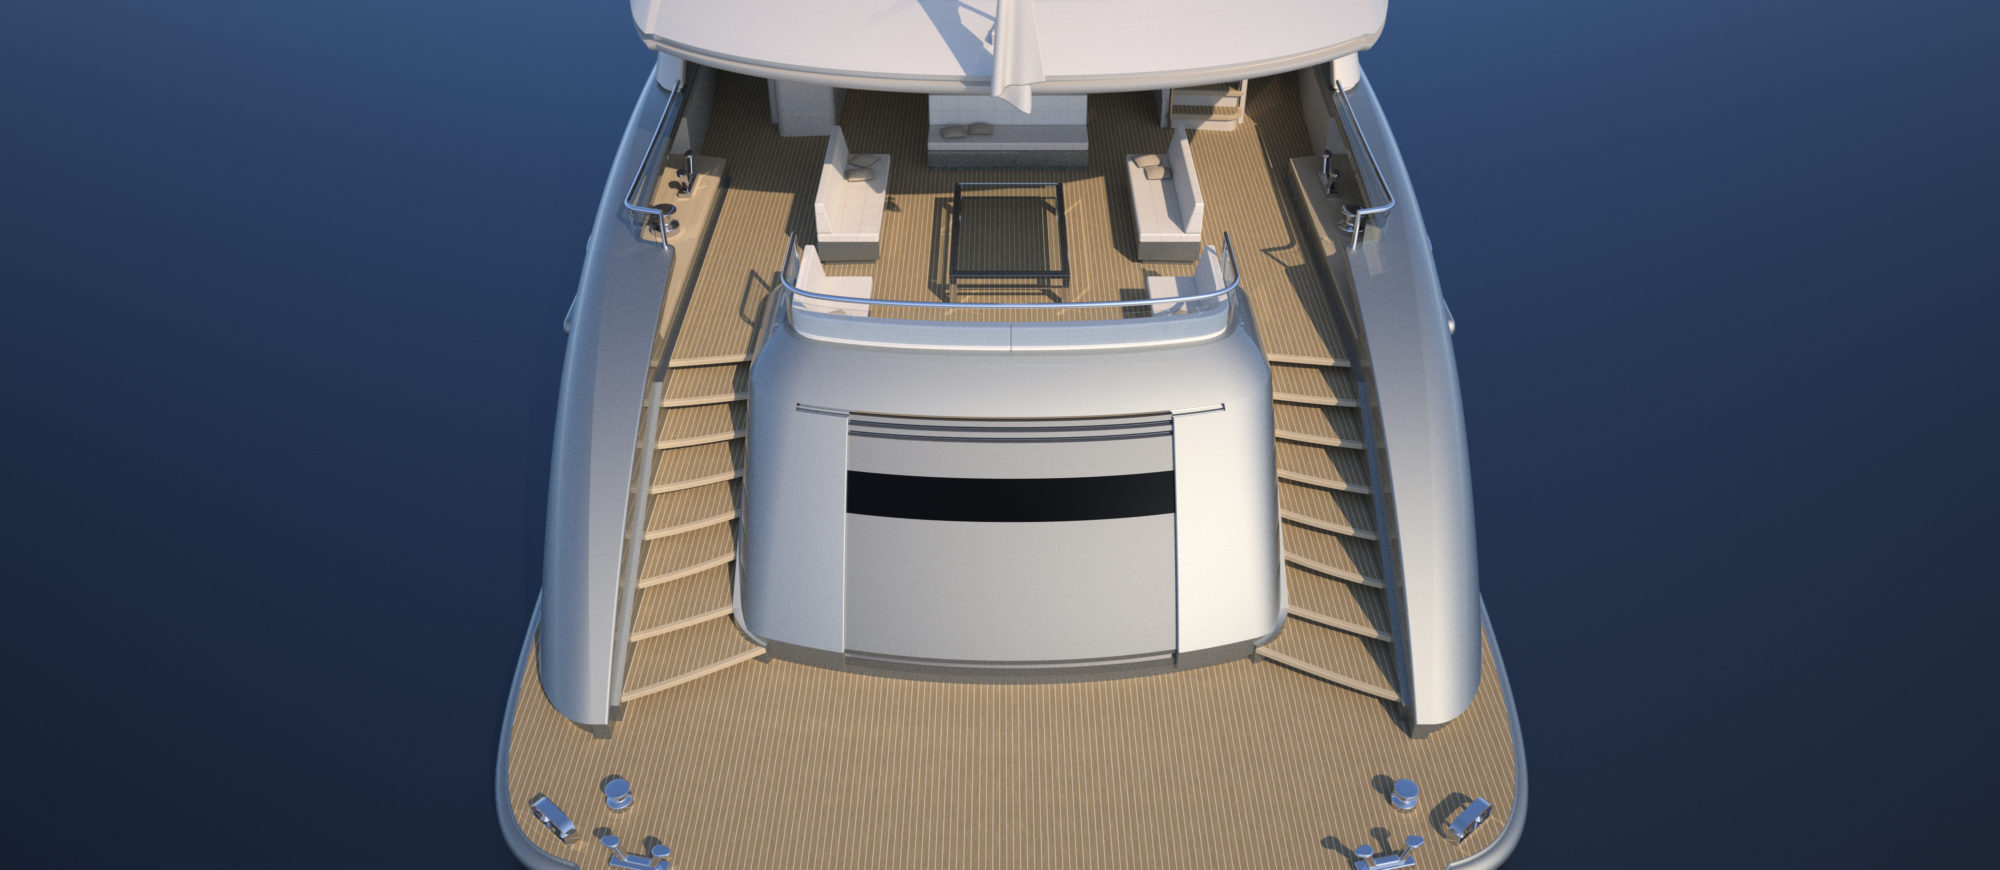 Conrad C166 Superyacht Concept Vallicelli Visualisation Main Deck 1